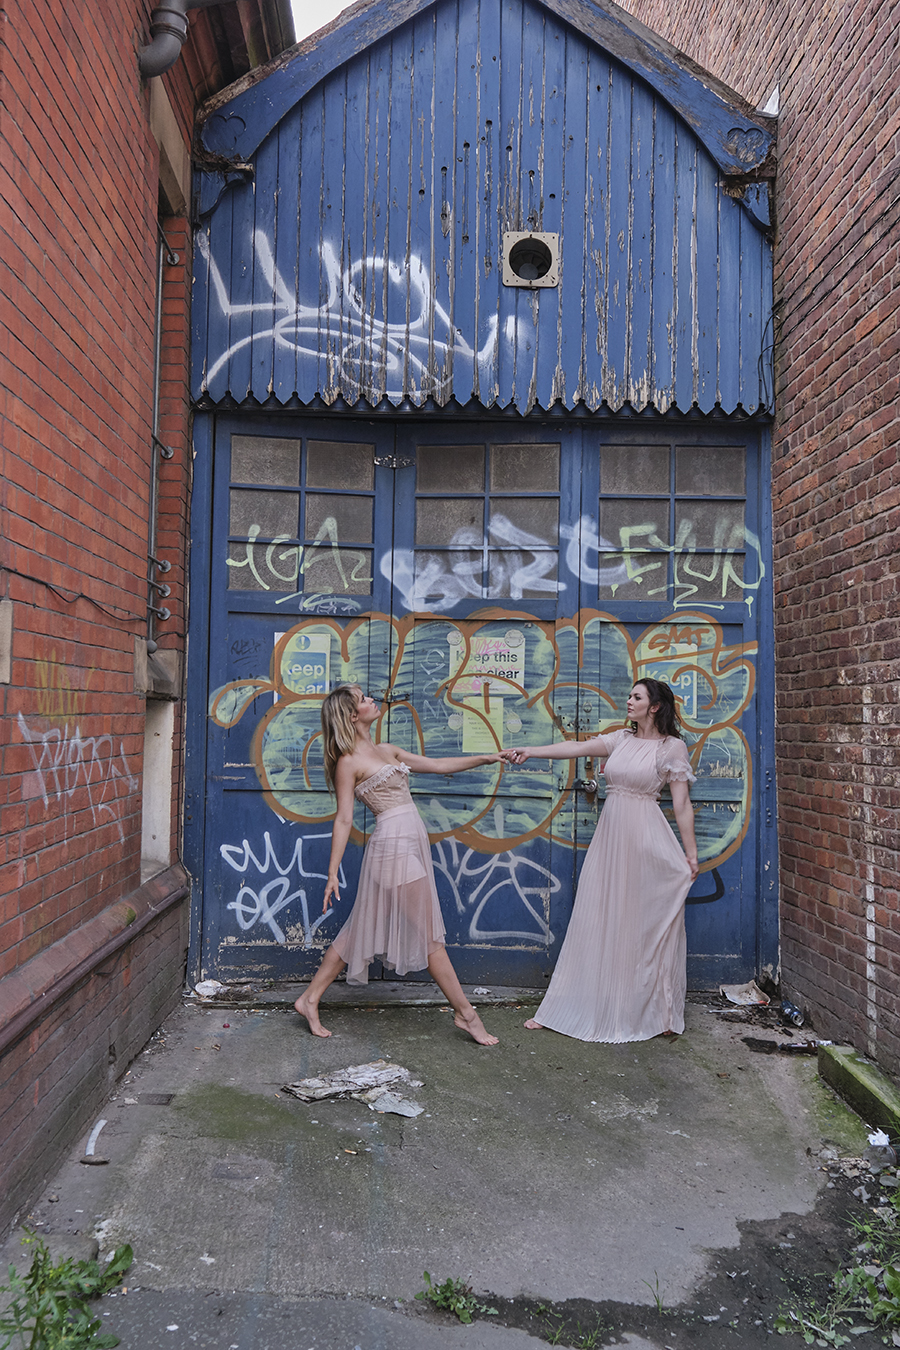 Come to Me / Photography by GaryMac Photography, Models Angel., Models Lizzie Bayliss / Uploaded 7th September 2019 @ 10:25 PM